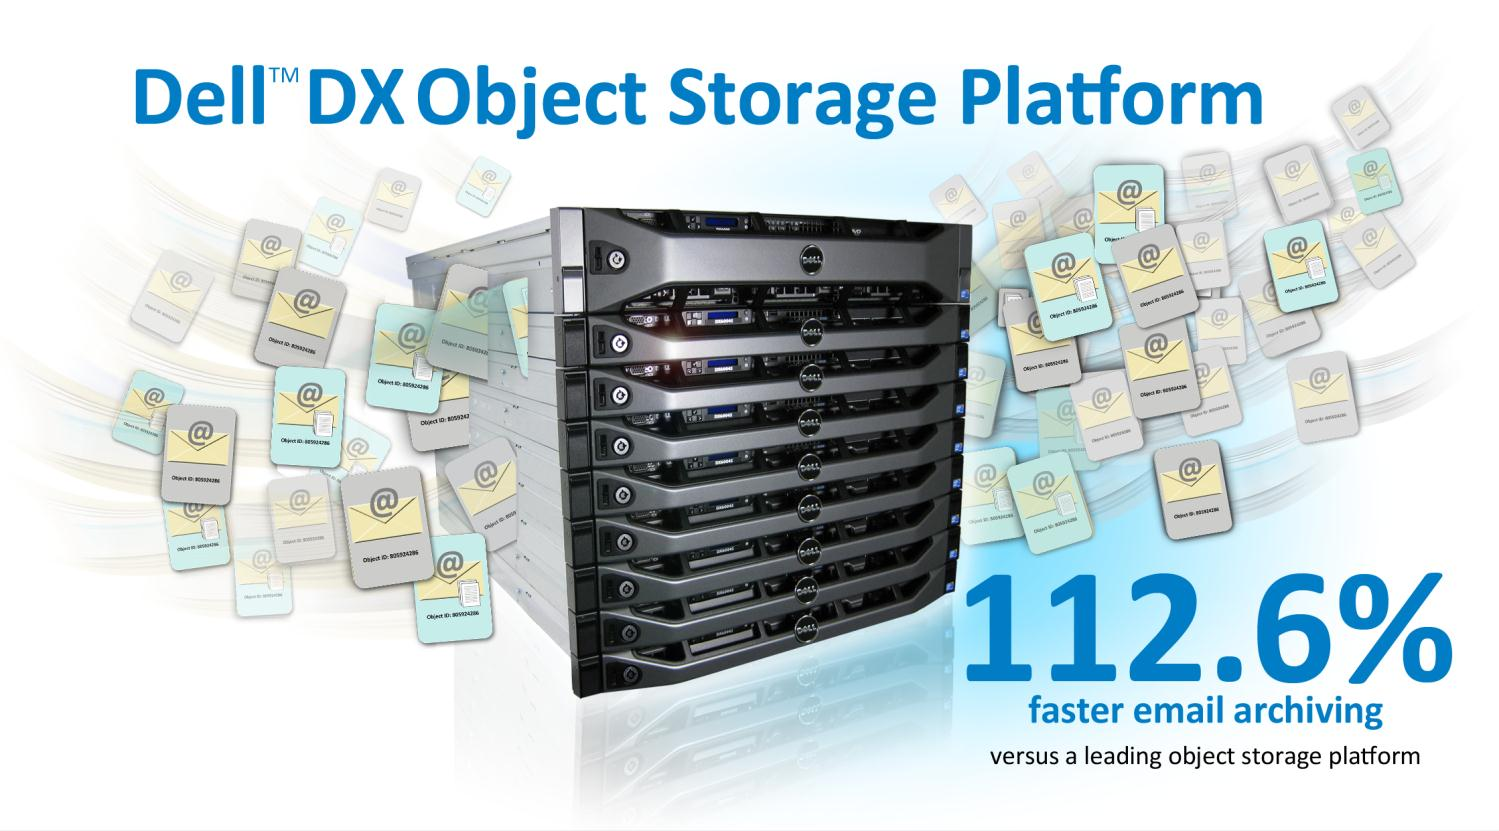 EMAIL ARCHIVING: STORAGE PERFORMANCE OF DELL DX OBJECT STORAGE PLATFORM VS.